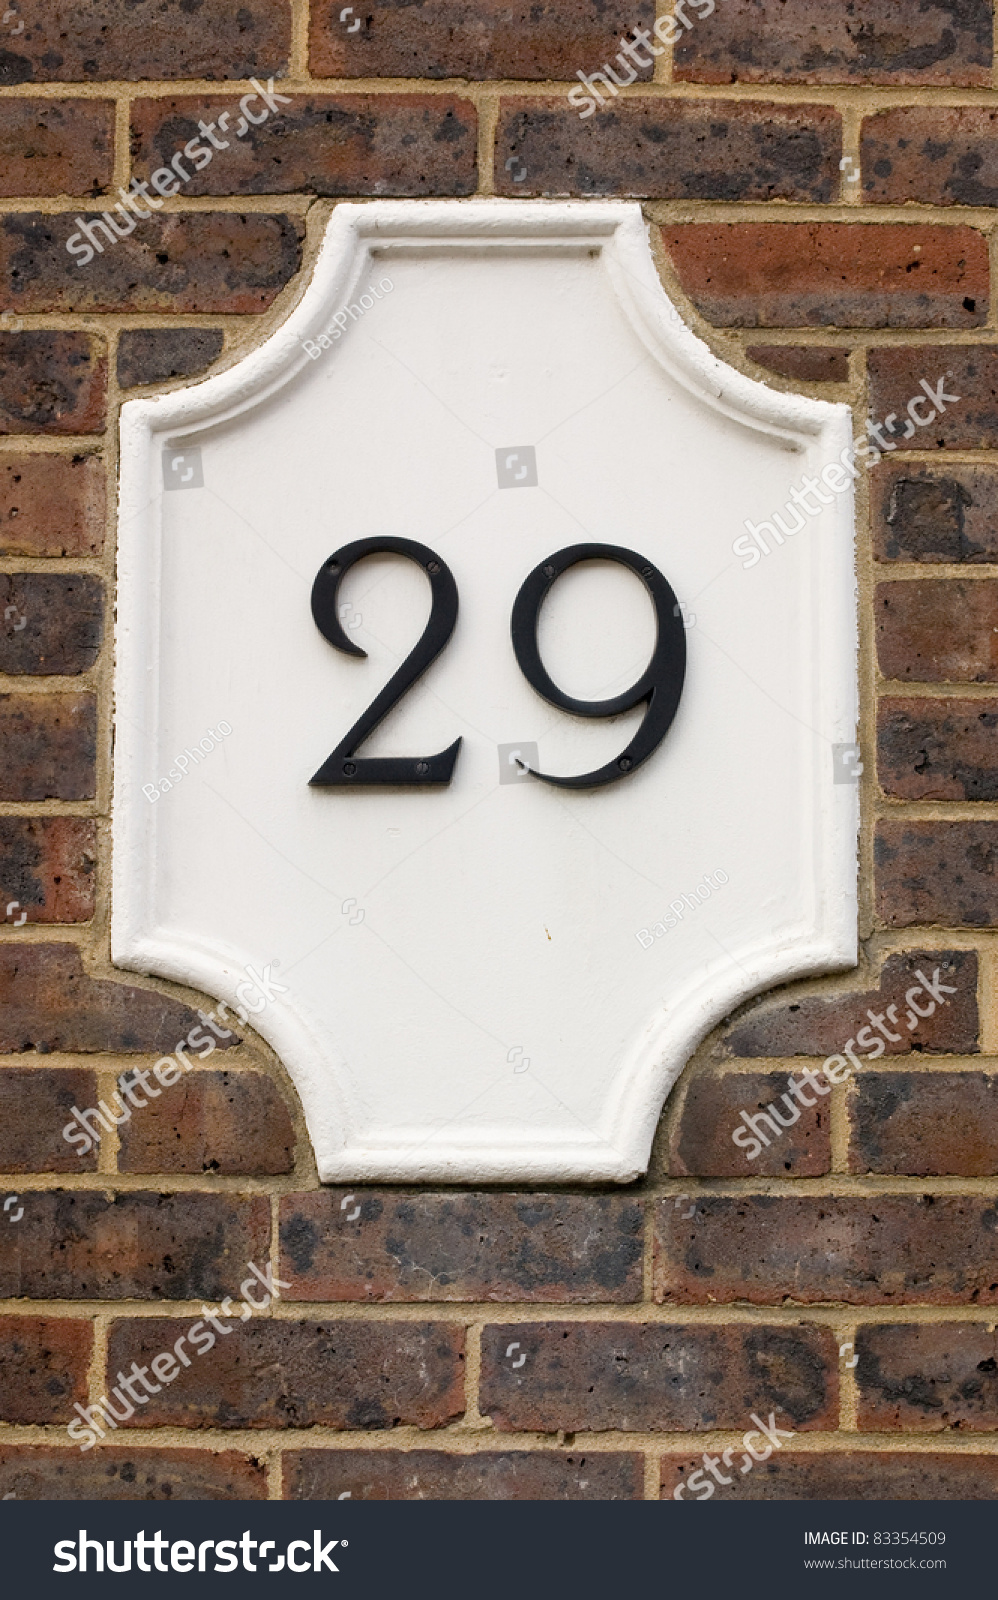 Wall Plaque Showing Number Twenty Nine 29 Outside Wall Of A House Stock Photo 83354509